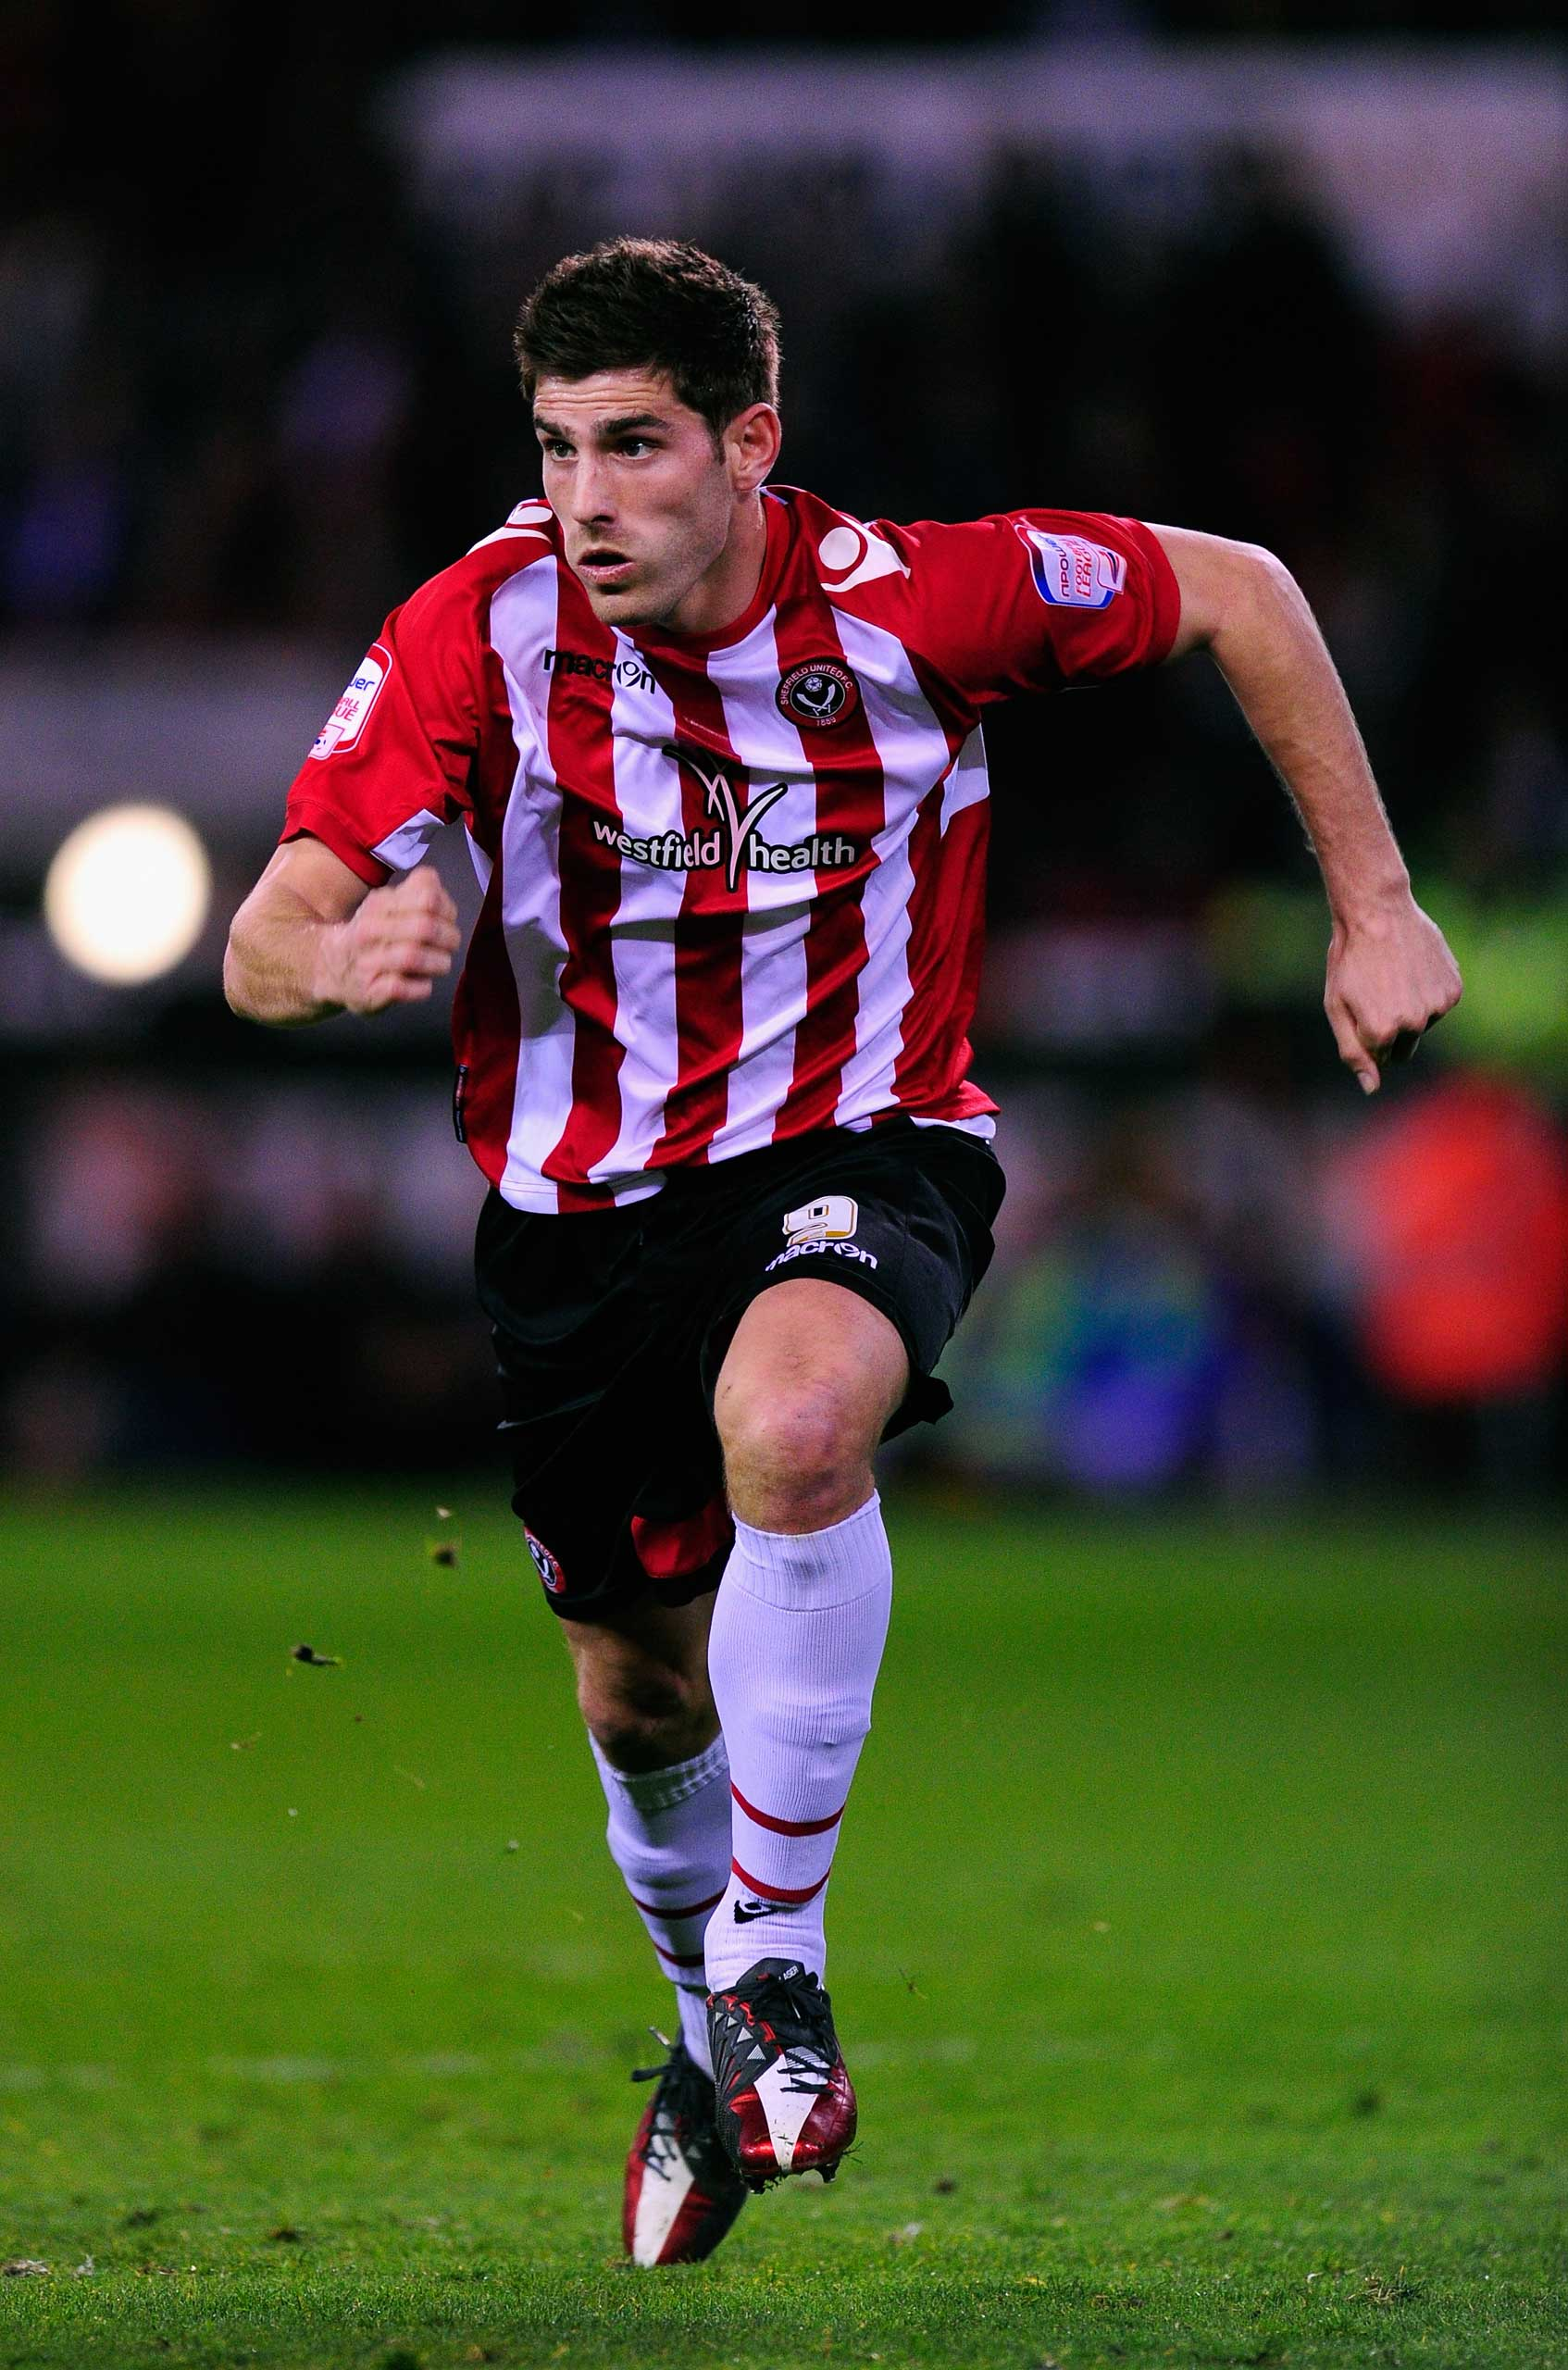 Ched Evans playing for Sheffield United in 2012.